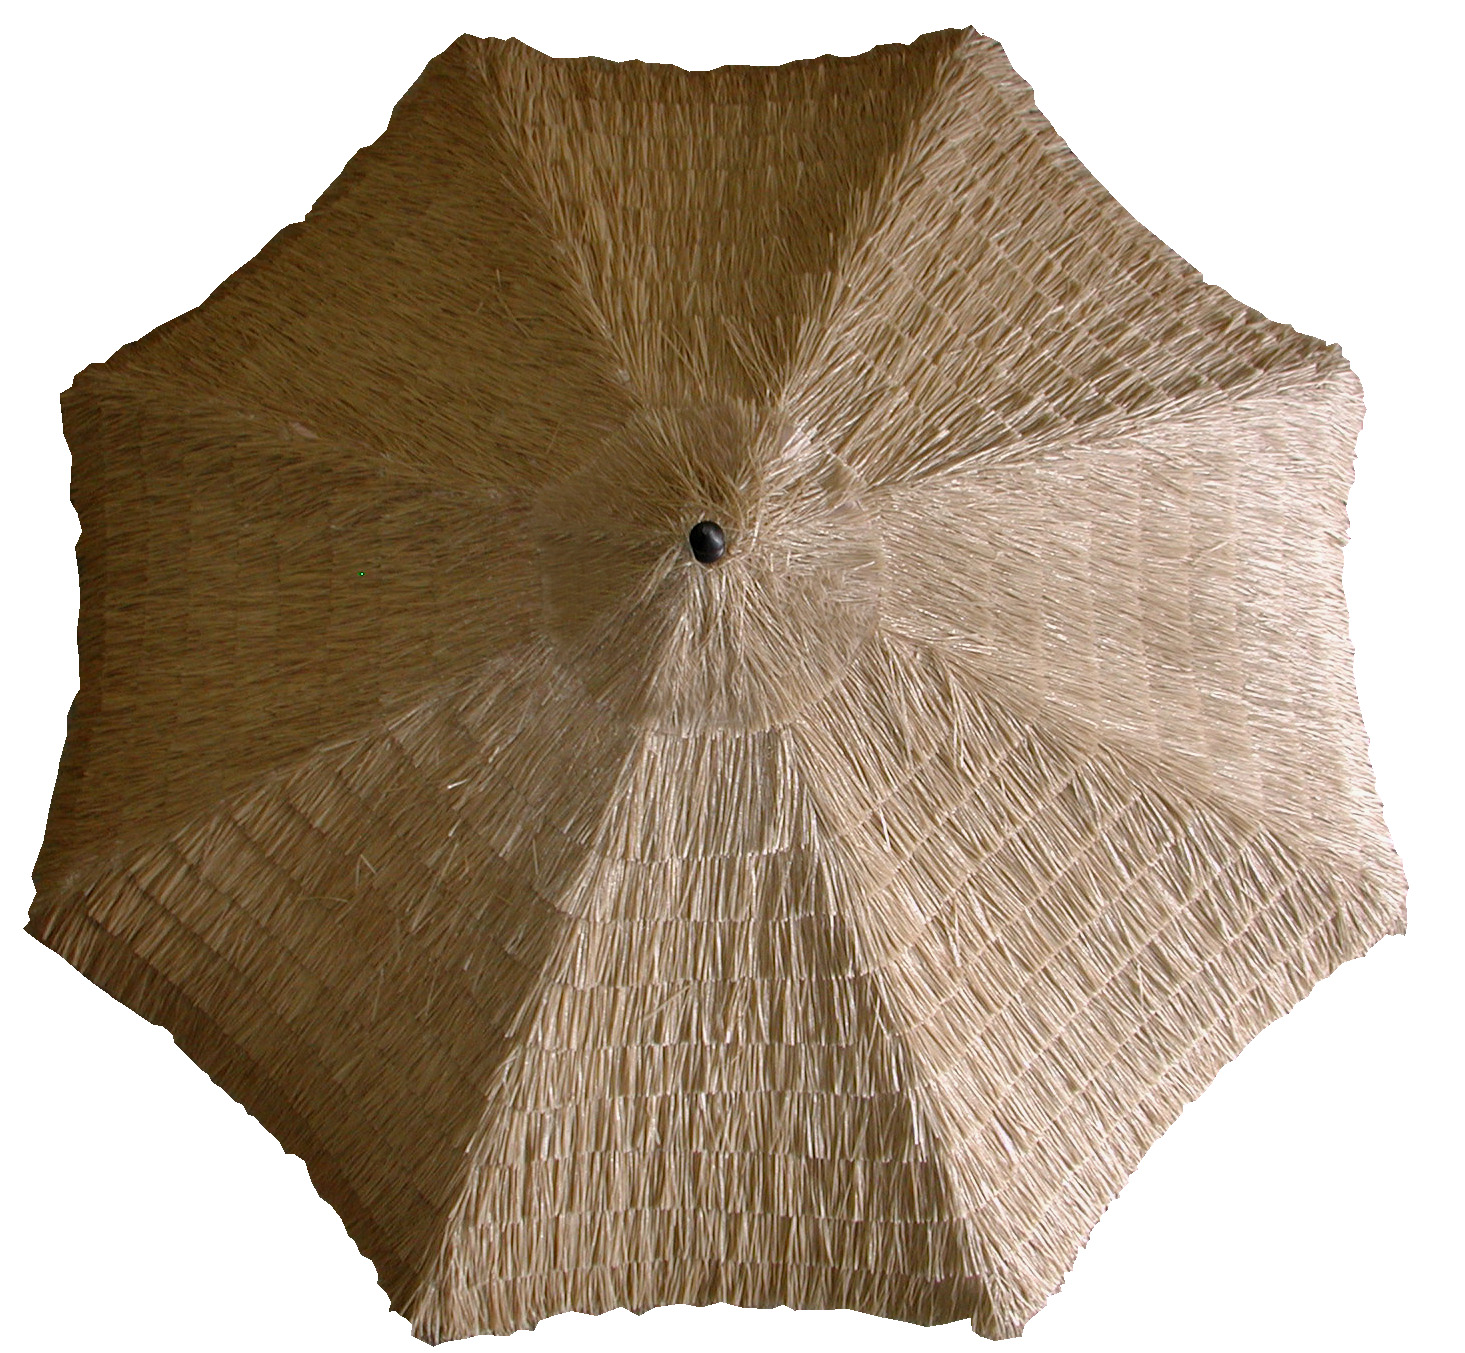 ... Replacement Umbrella Canopy Quick View  sc 1 st  Patio Umbrella Store & Replacement Umbrella Canopy